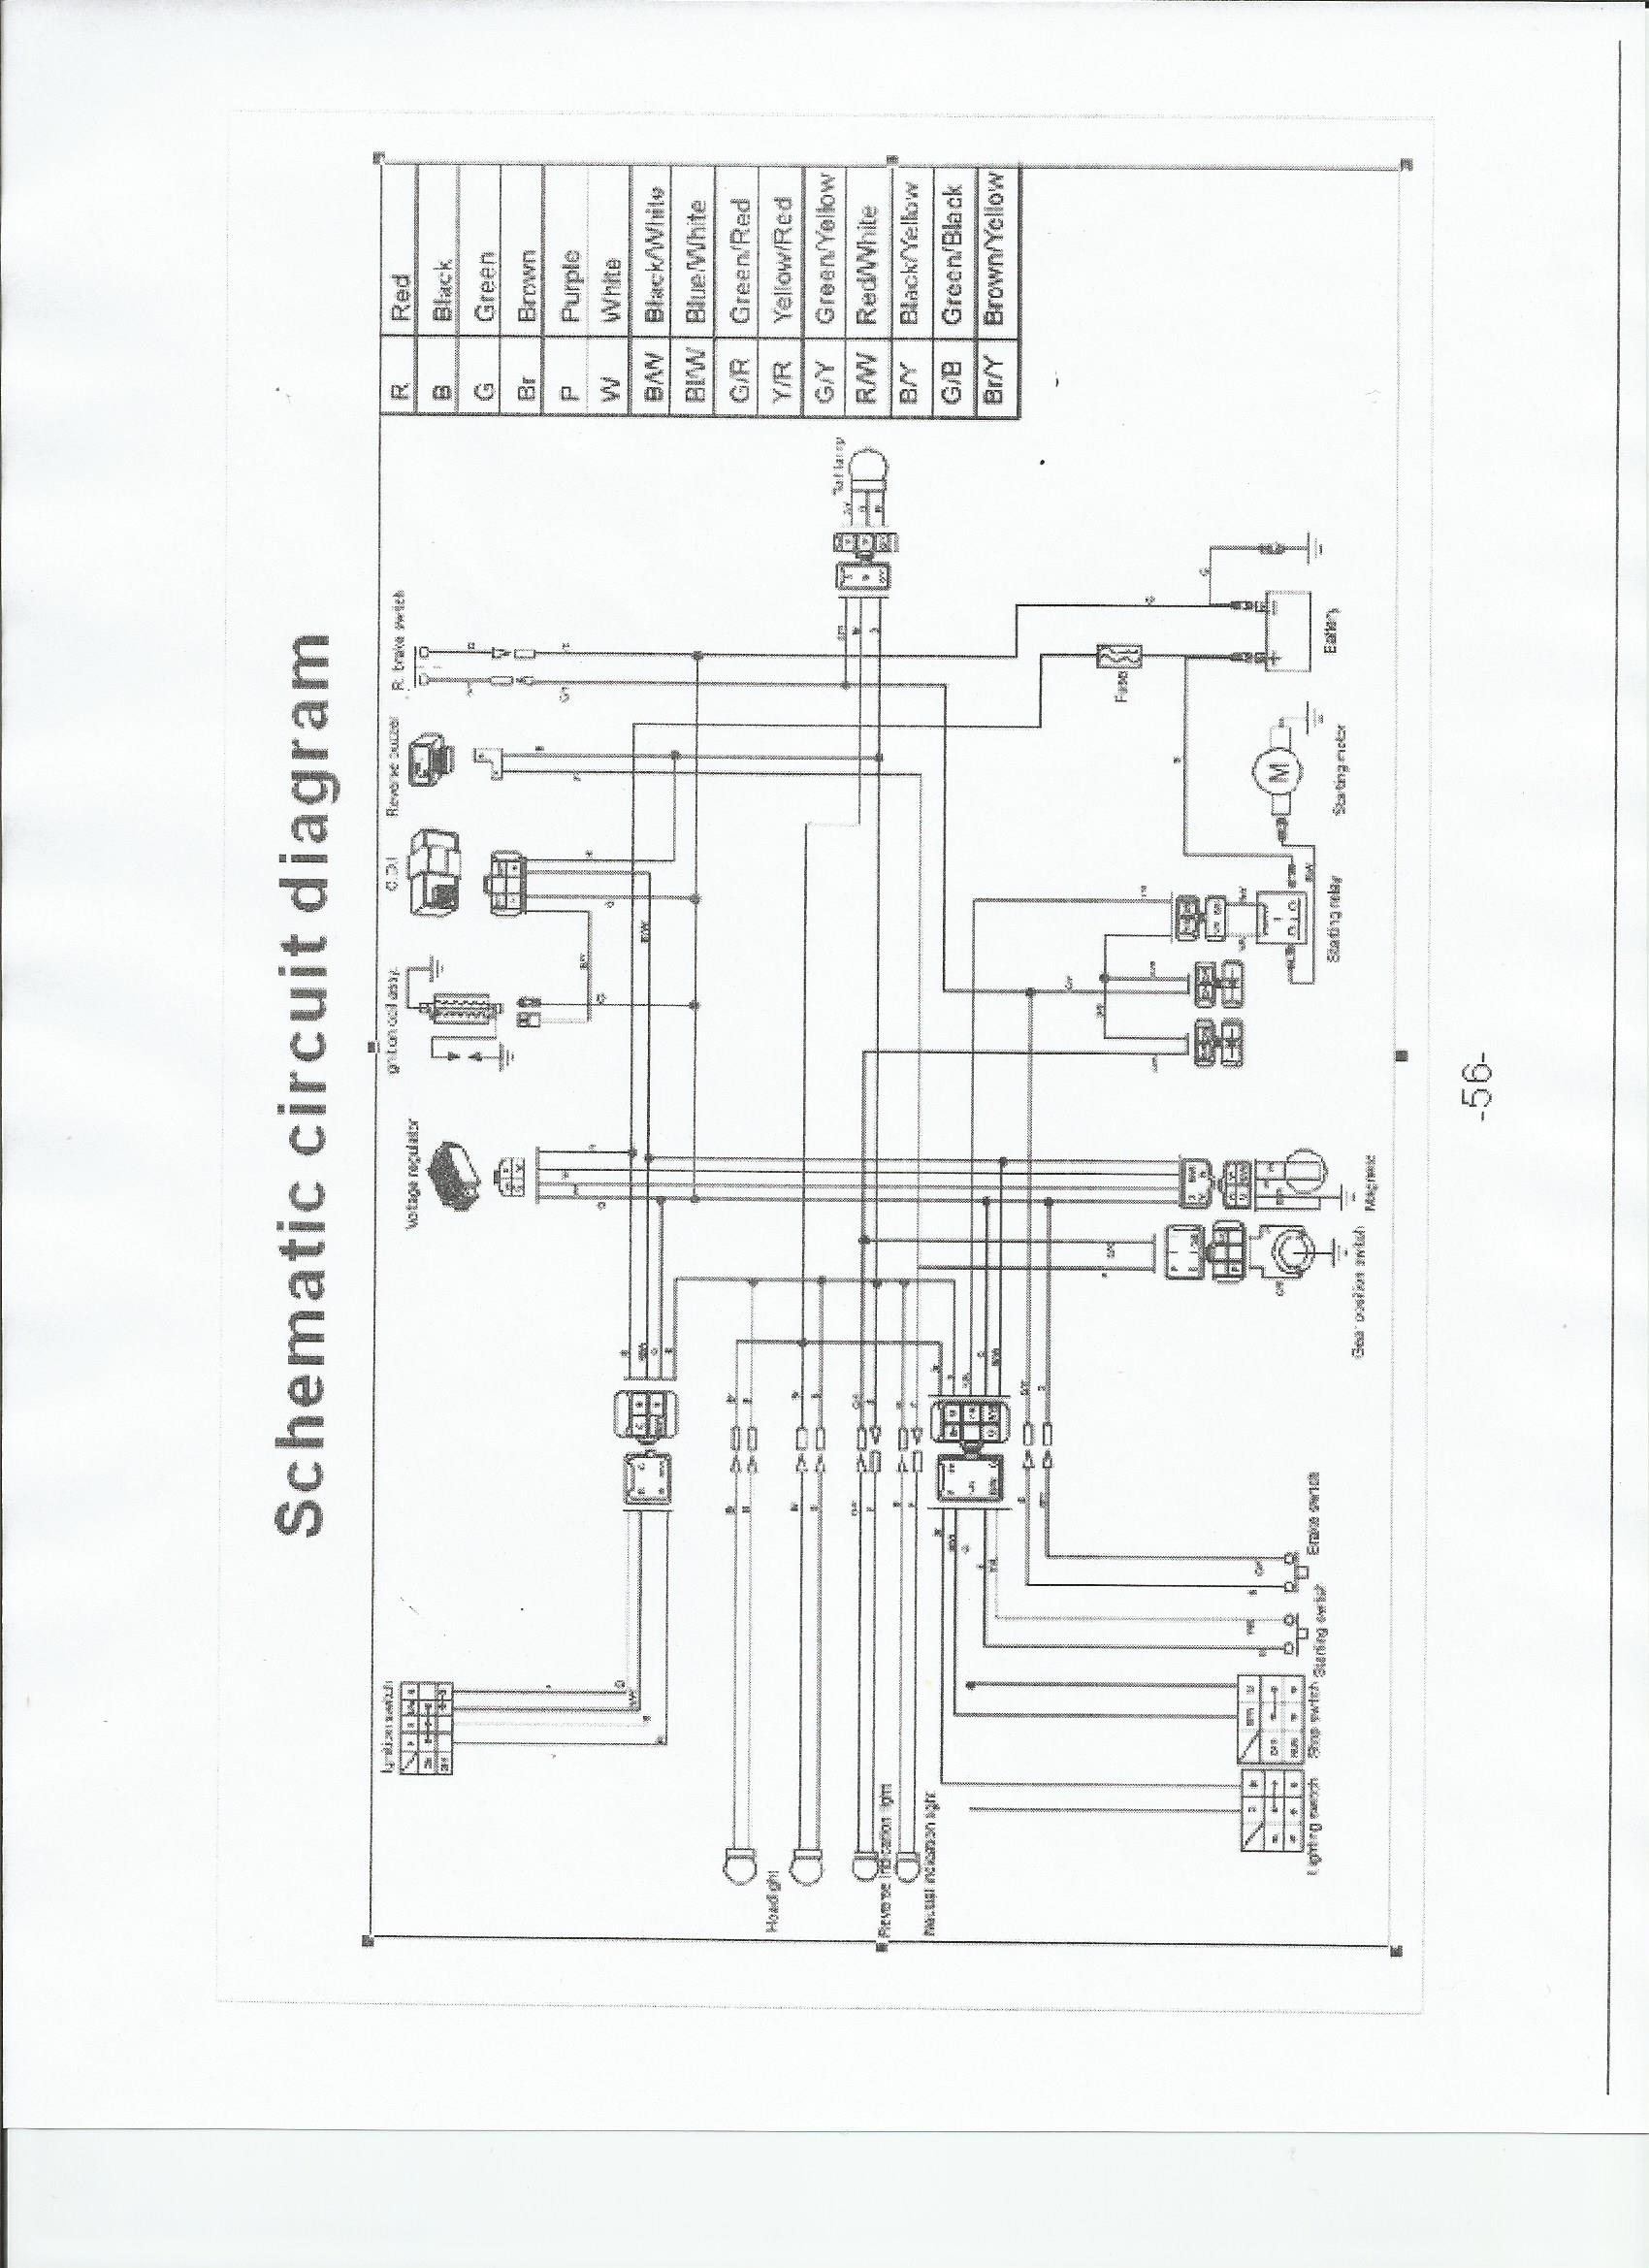 honda atv wiring schematic wiring diagrams schemataotao mini and youth atv wiring schematic familygokarts support hyundai wiring schematic honda atv wiring schematic